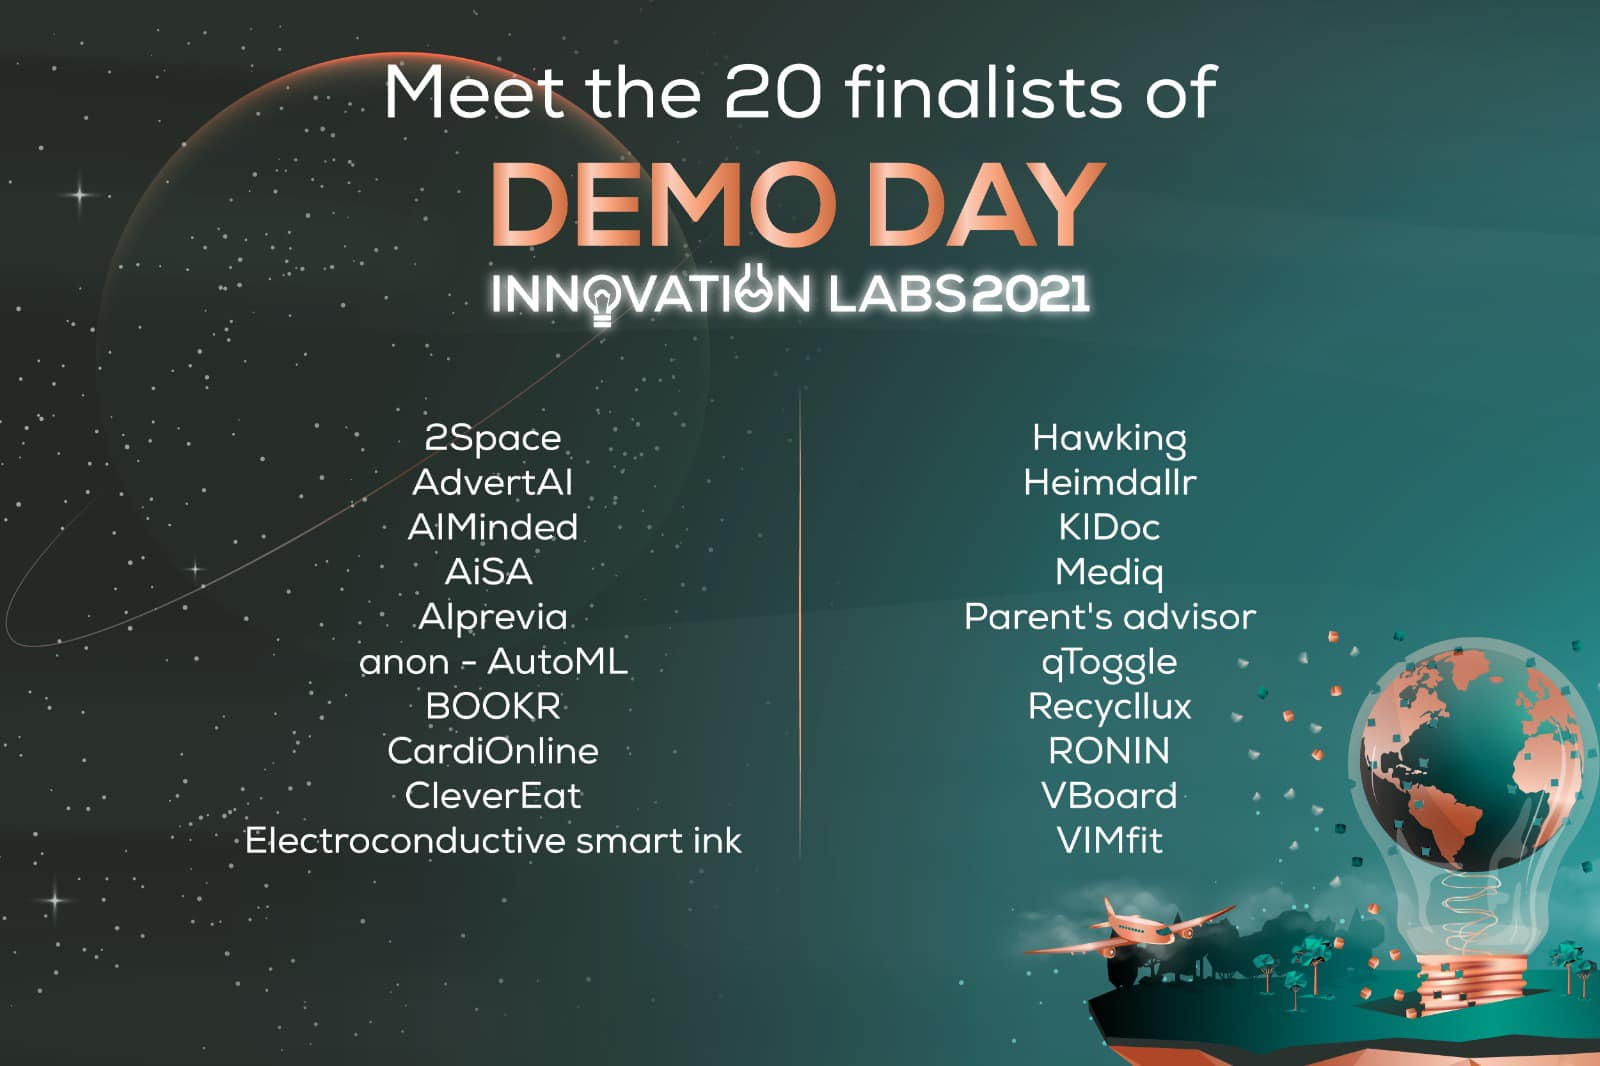 Innovation Labs - Demo Day (3)